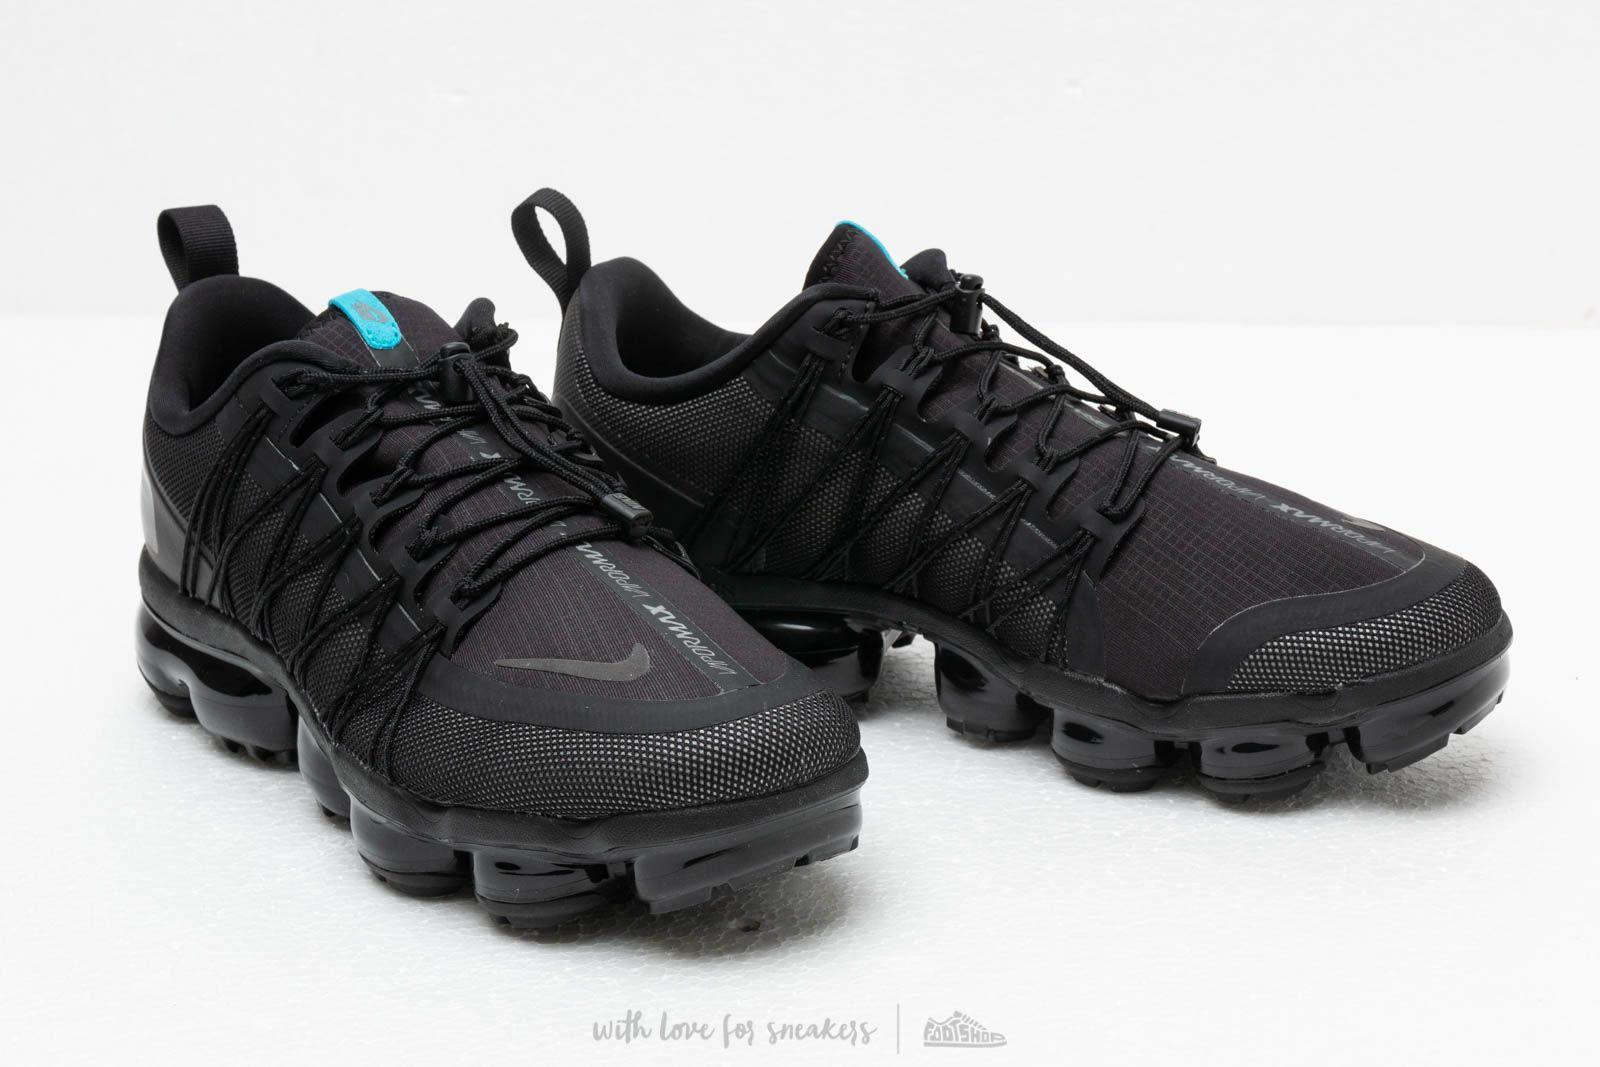 486a43bcd08 Lyst - Nike Air Vapormax Run Utility Black  Cool Grey-blue Fury in ...